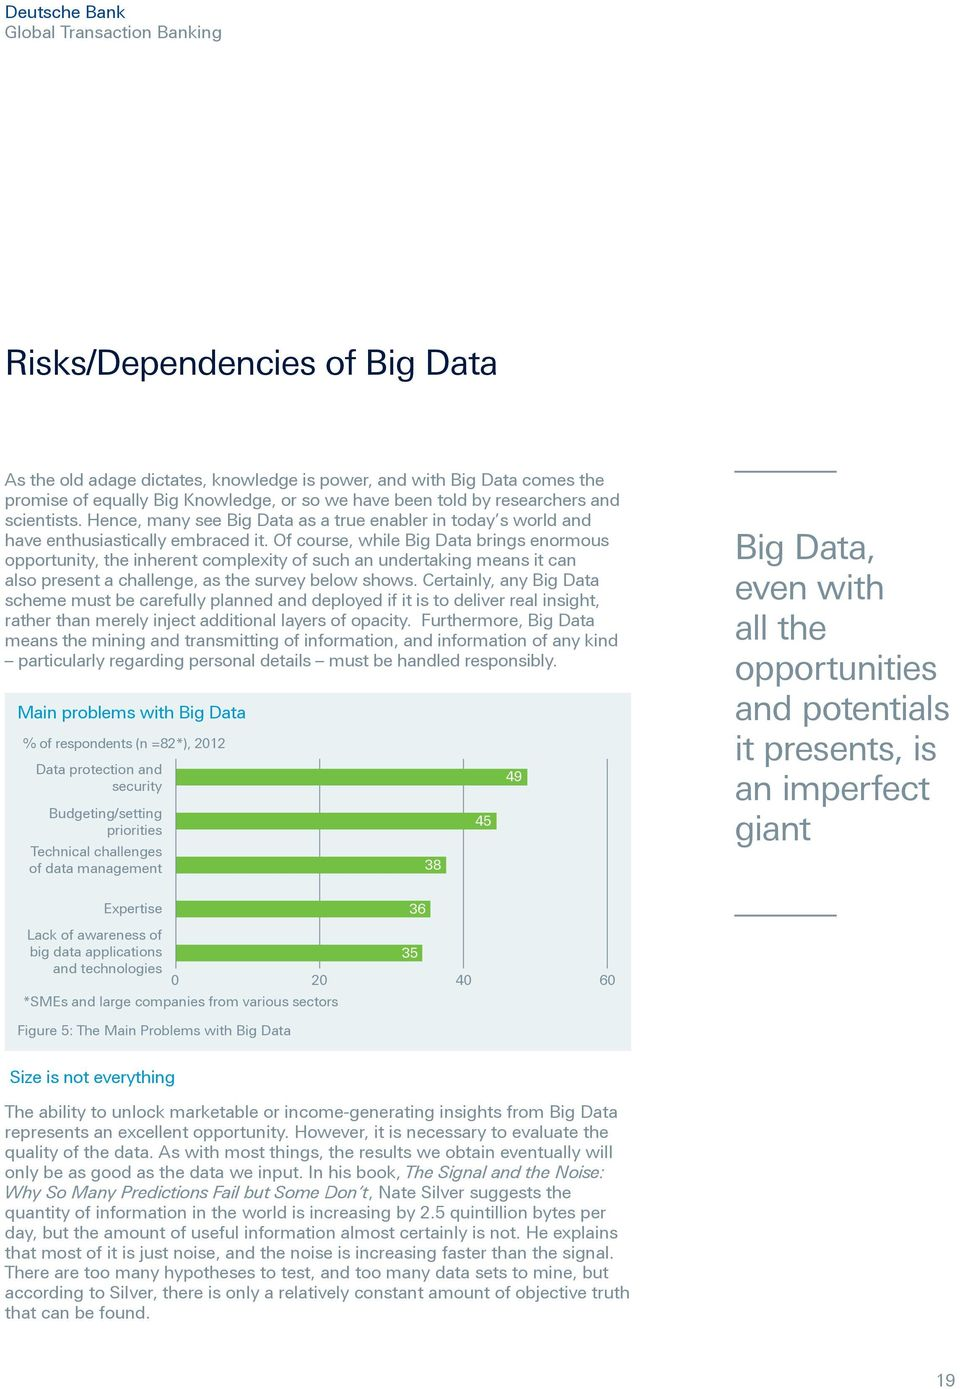 Of course, while Big Data brings enormous opportunity, the inherent complexity of such an undertaking means it can also present a challenge, as the survey below shows.